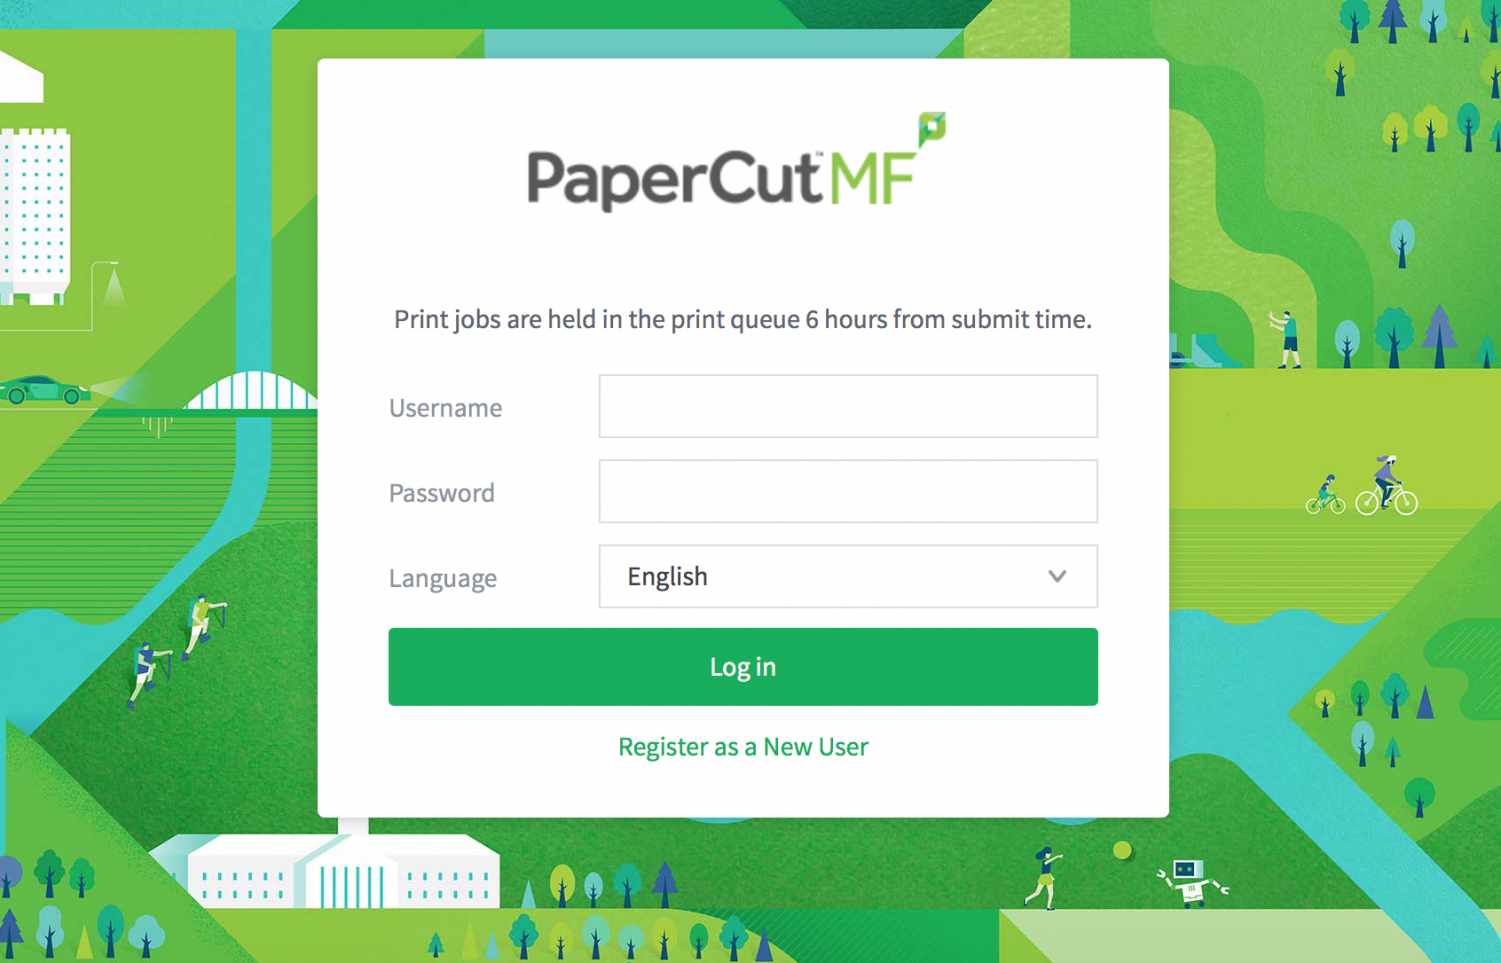 PaperCut makes printing easier